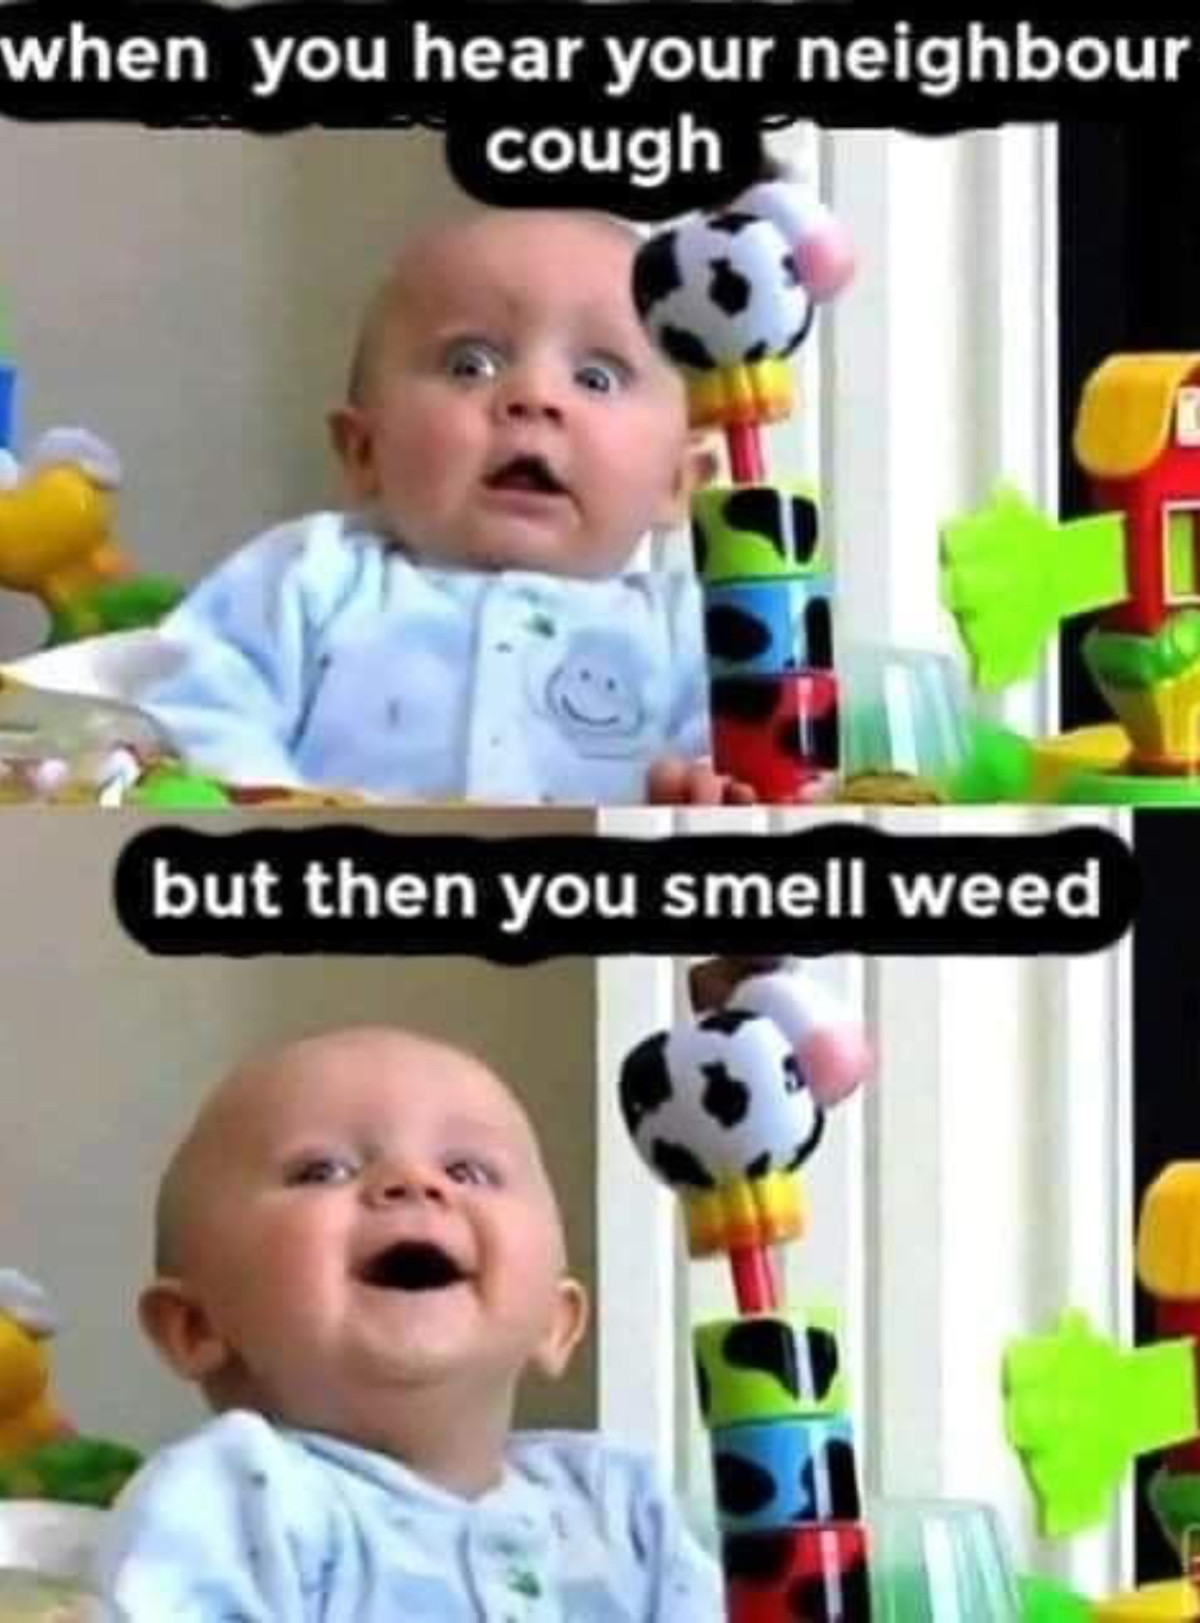 """And he can't share it. .. >Inb4 annoying """"lmao weed dude"""" comments."""